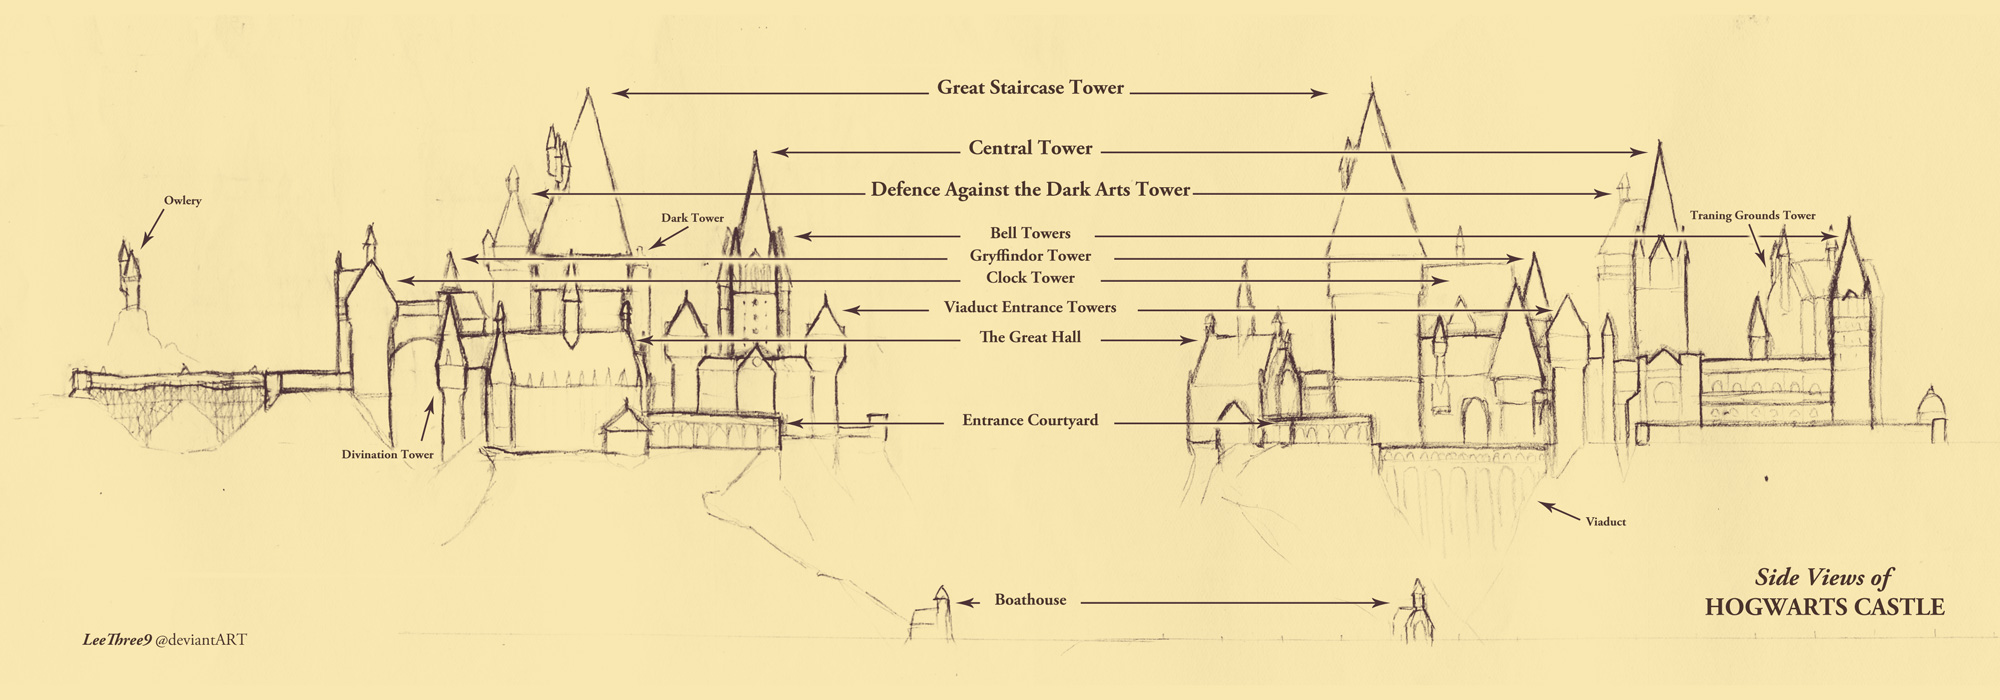 Side views of hogwarts castle by leethree9 on deviantart for Side by side plans